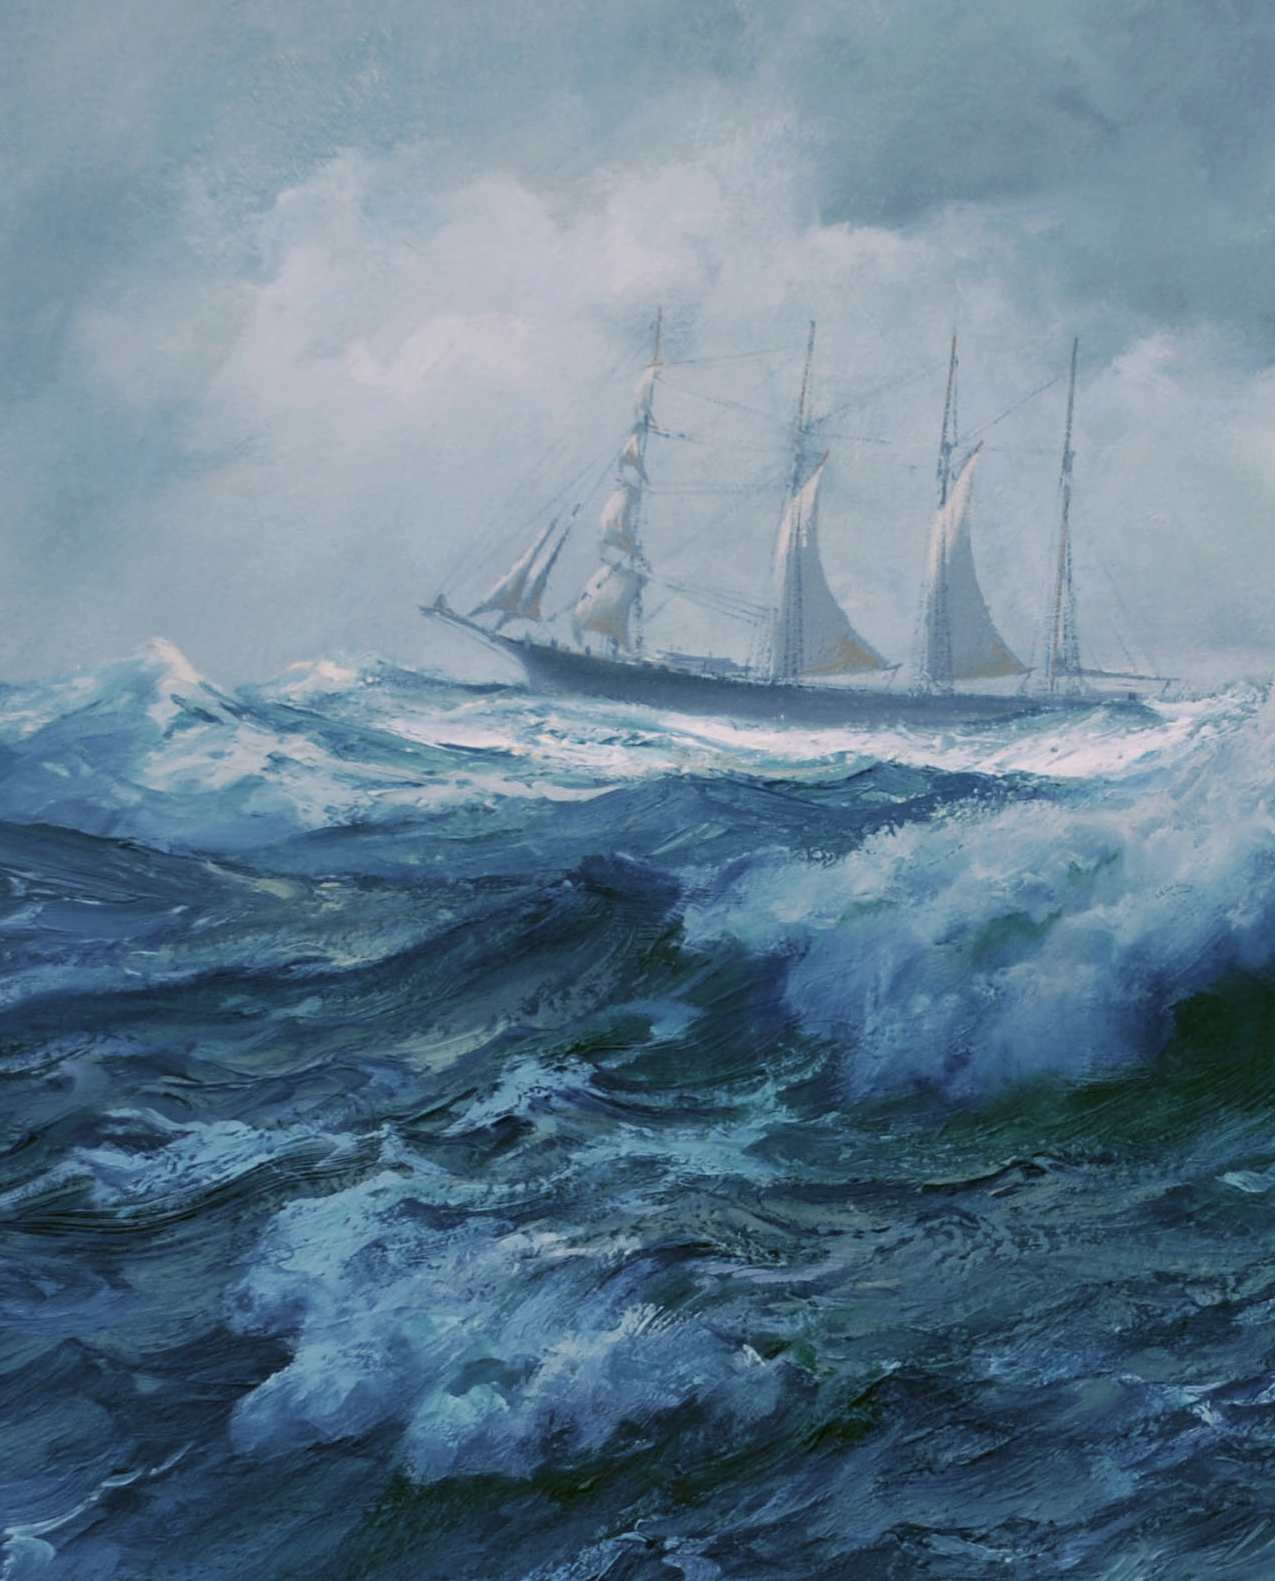 Barquentine beyond the crest painting detail